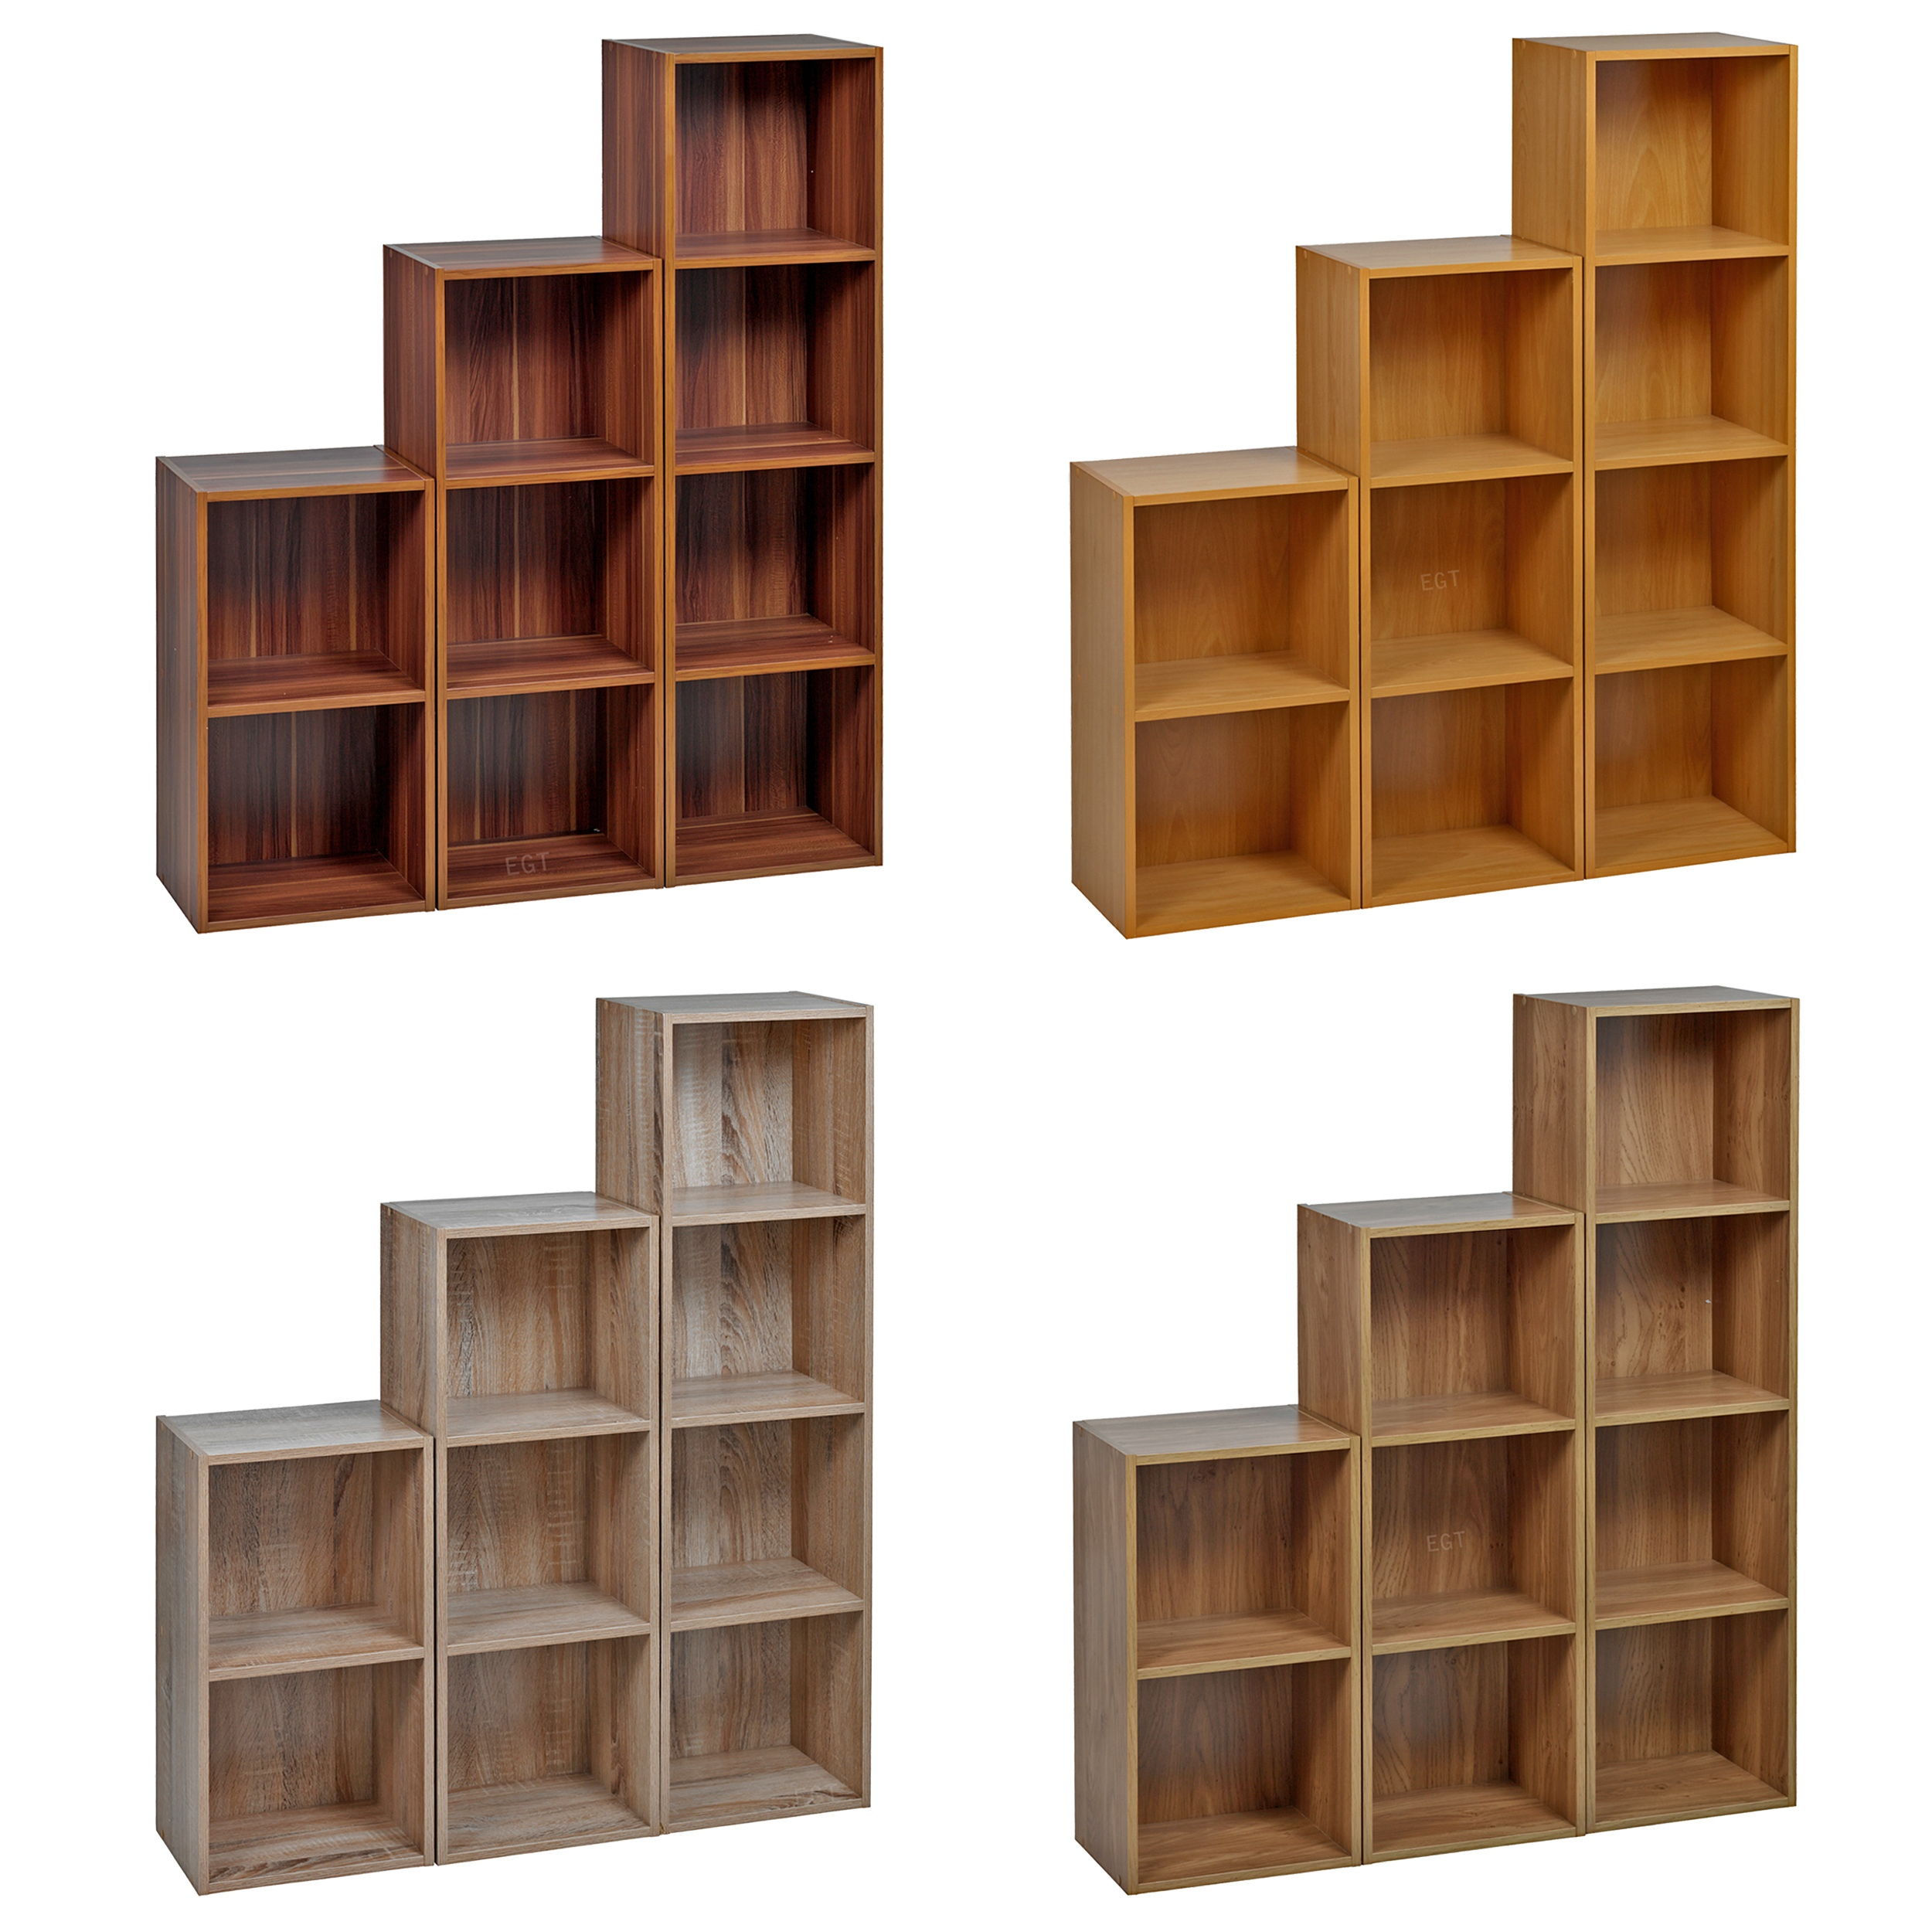 book kleine part made eck in das as of b shop by on designed shelf crowdyhouse bookcase shelves germany